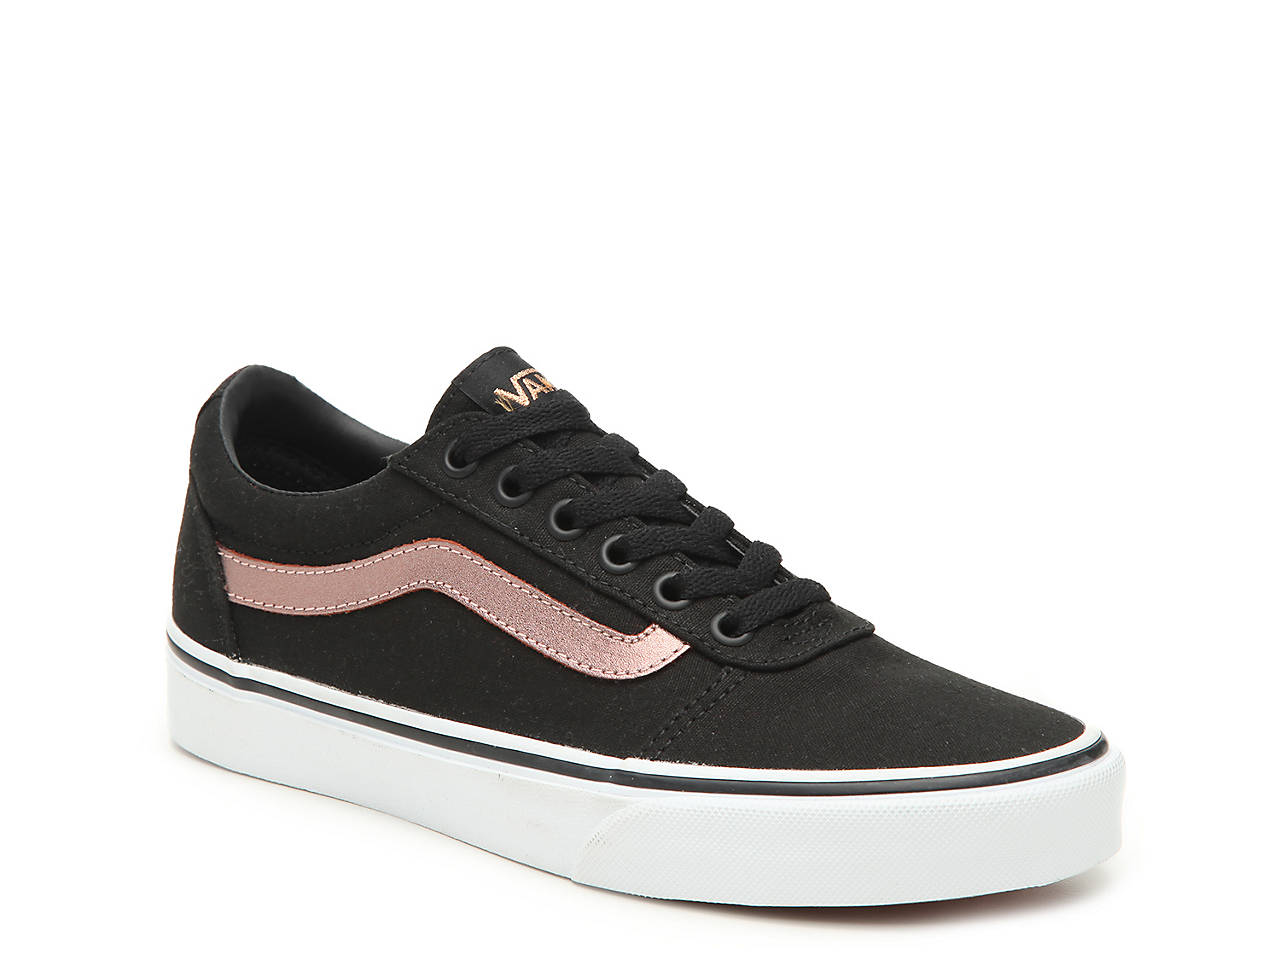 e0cc60d0504a Vans Ward Lo Sneaker - Women s Women s Shoes